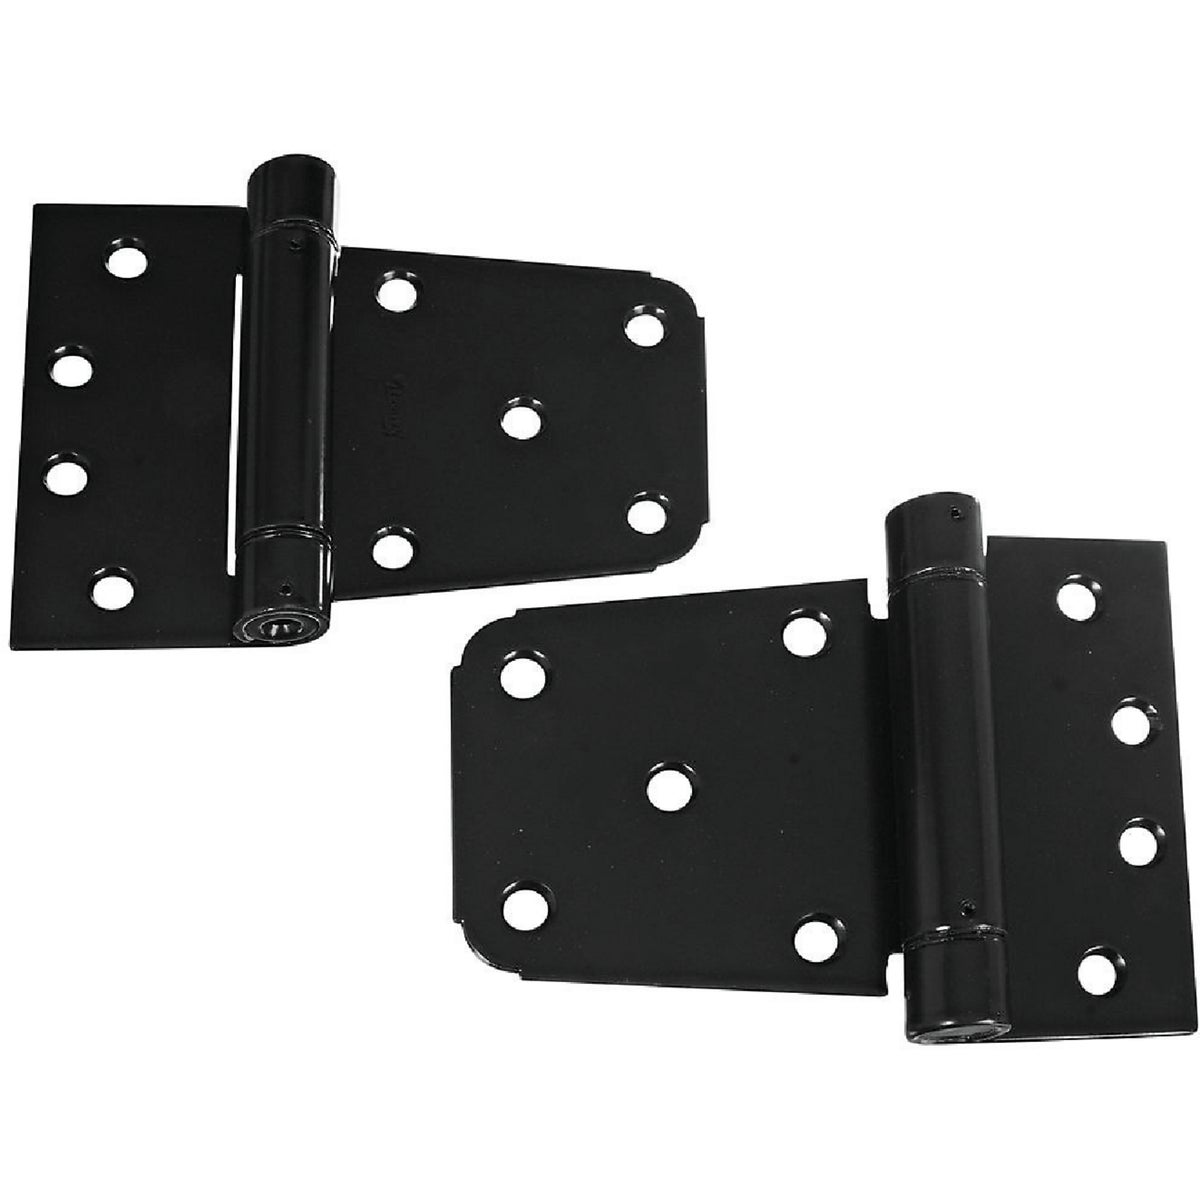 "3-1/2""BLK HVY GATE HINGE - N342592 by National Mfg Co"